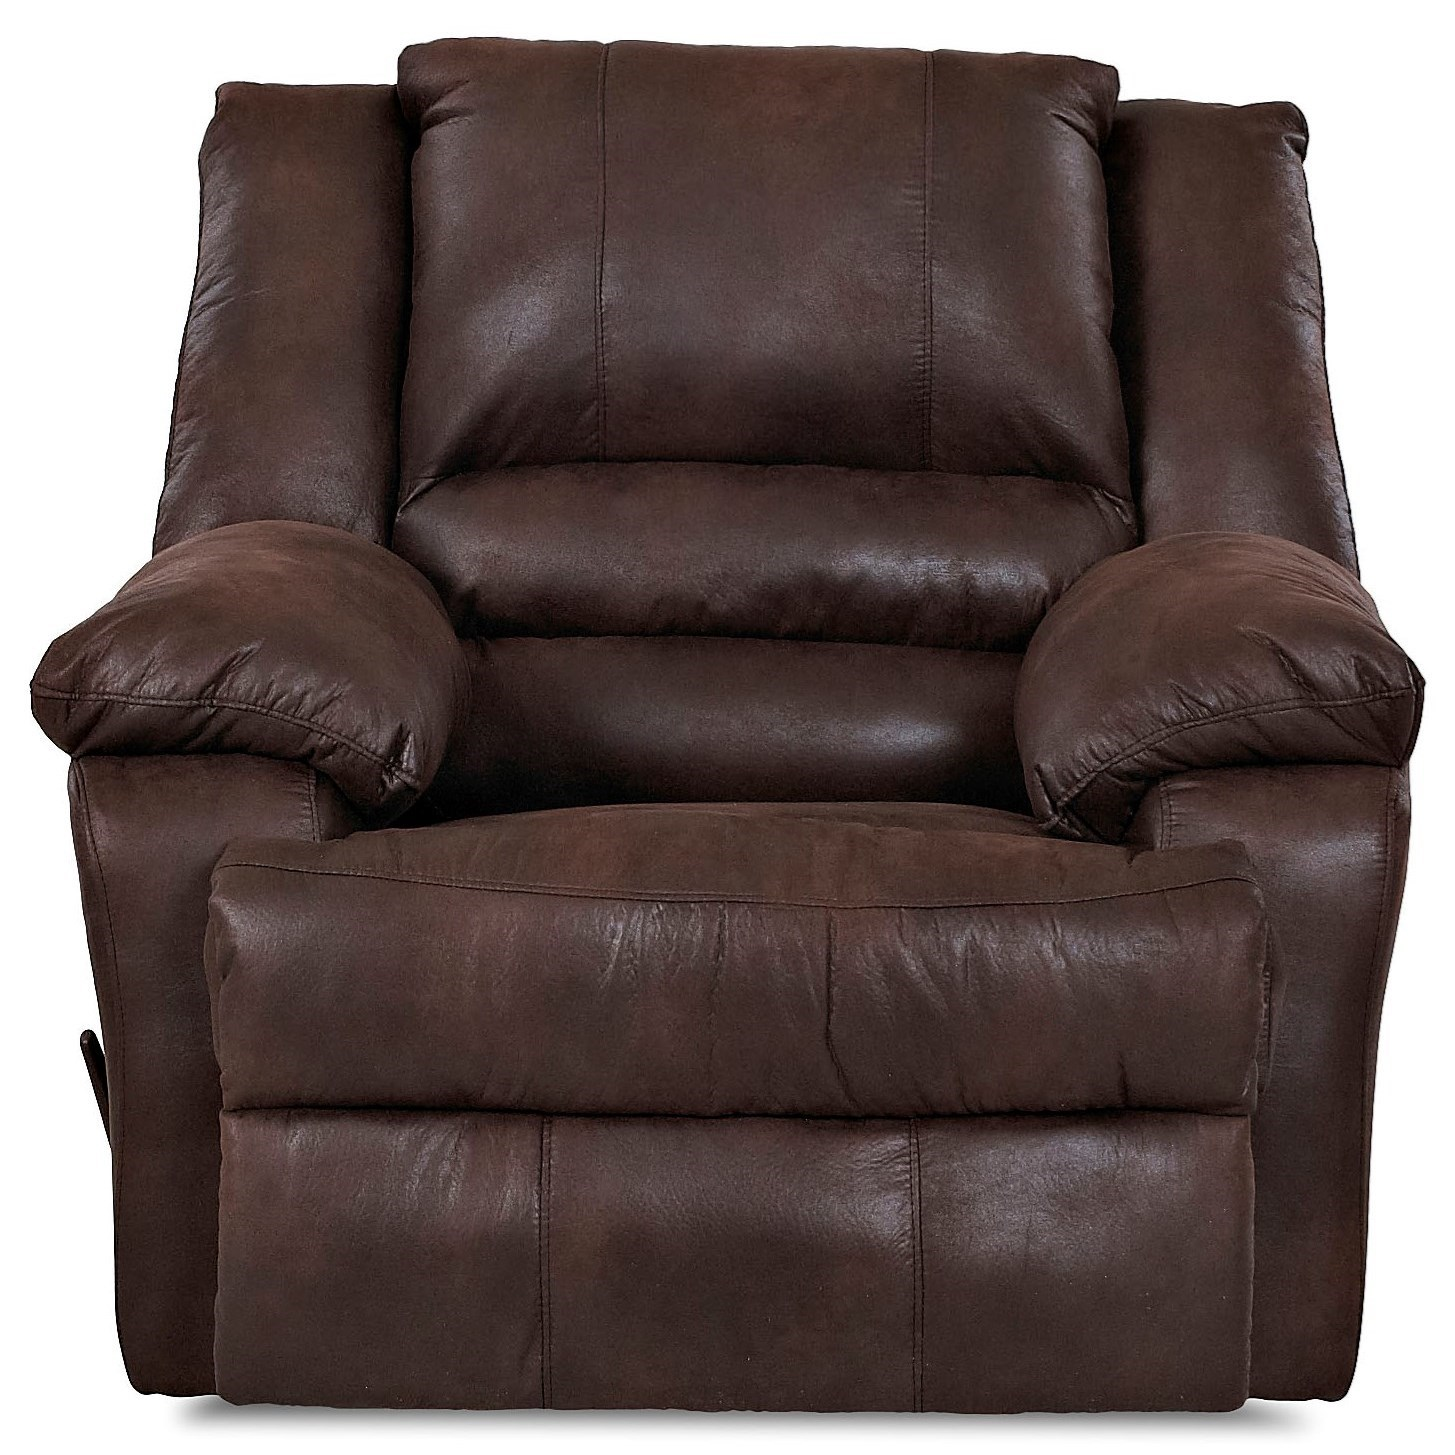 Klaussner Defender Casual Power Reclining Chair - Item Number: 83203 PWRC-Padre Espresso